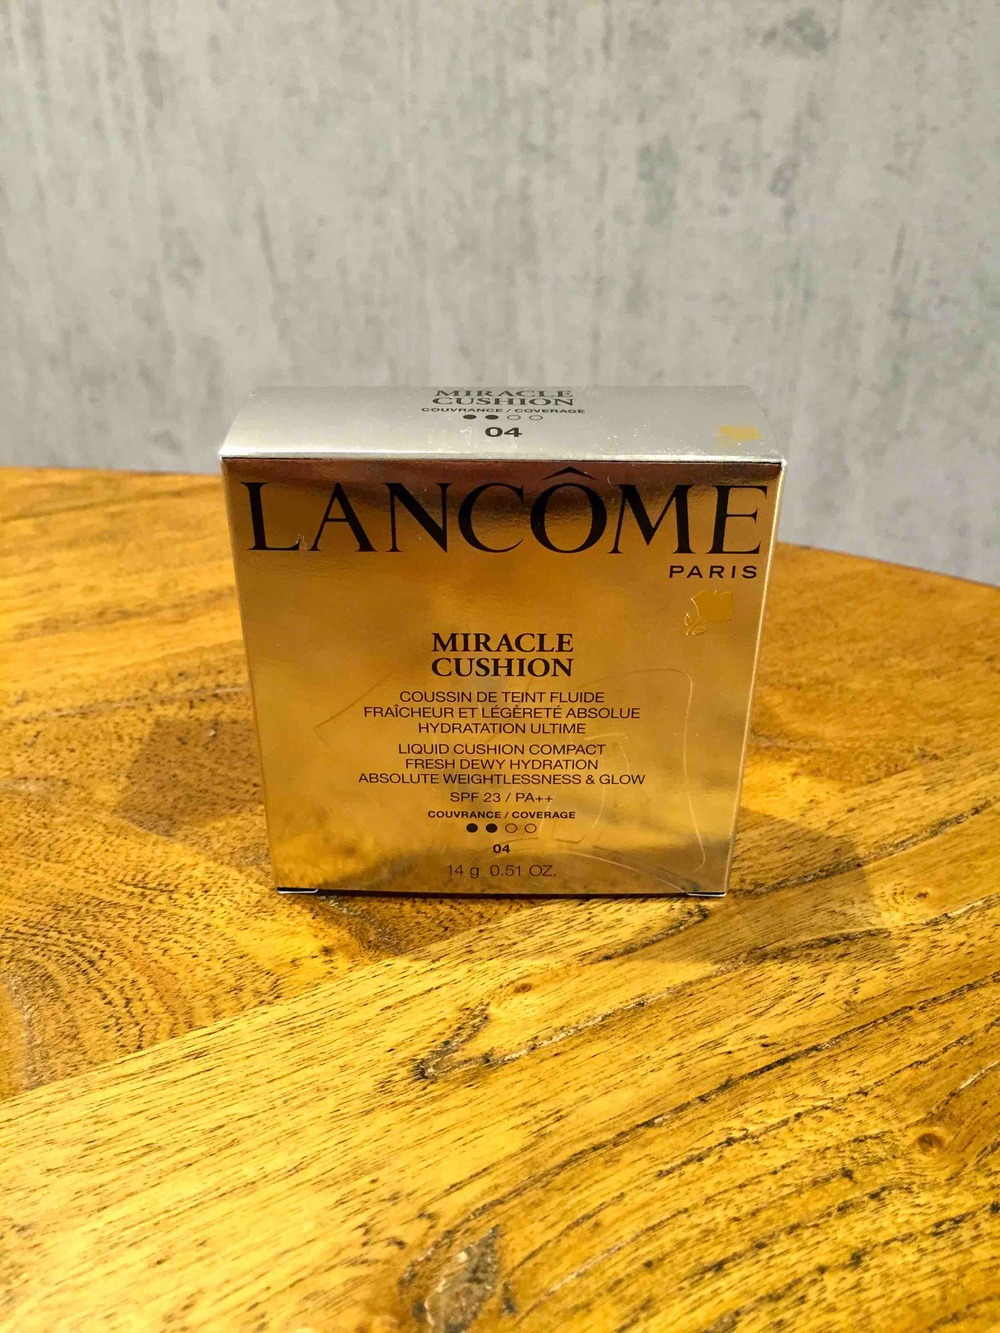 Lancome-Miracle-Cushion-Review-1.jpeg